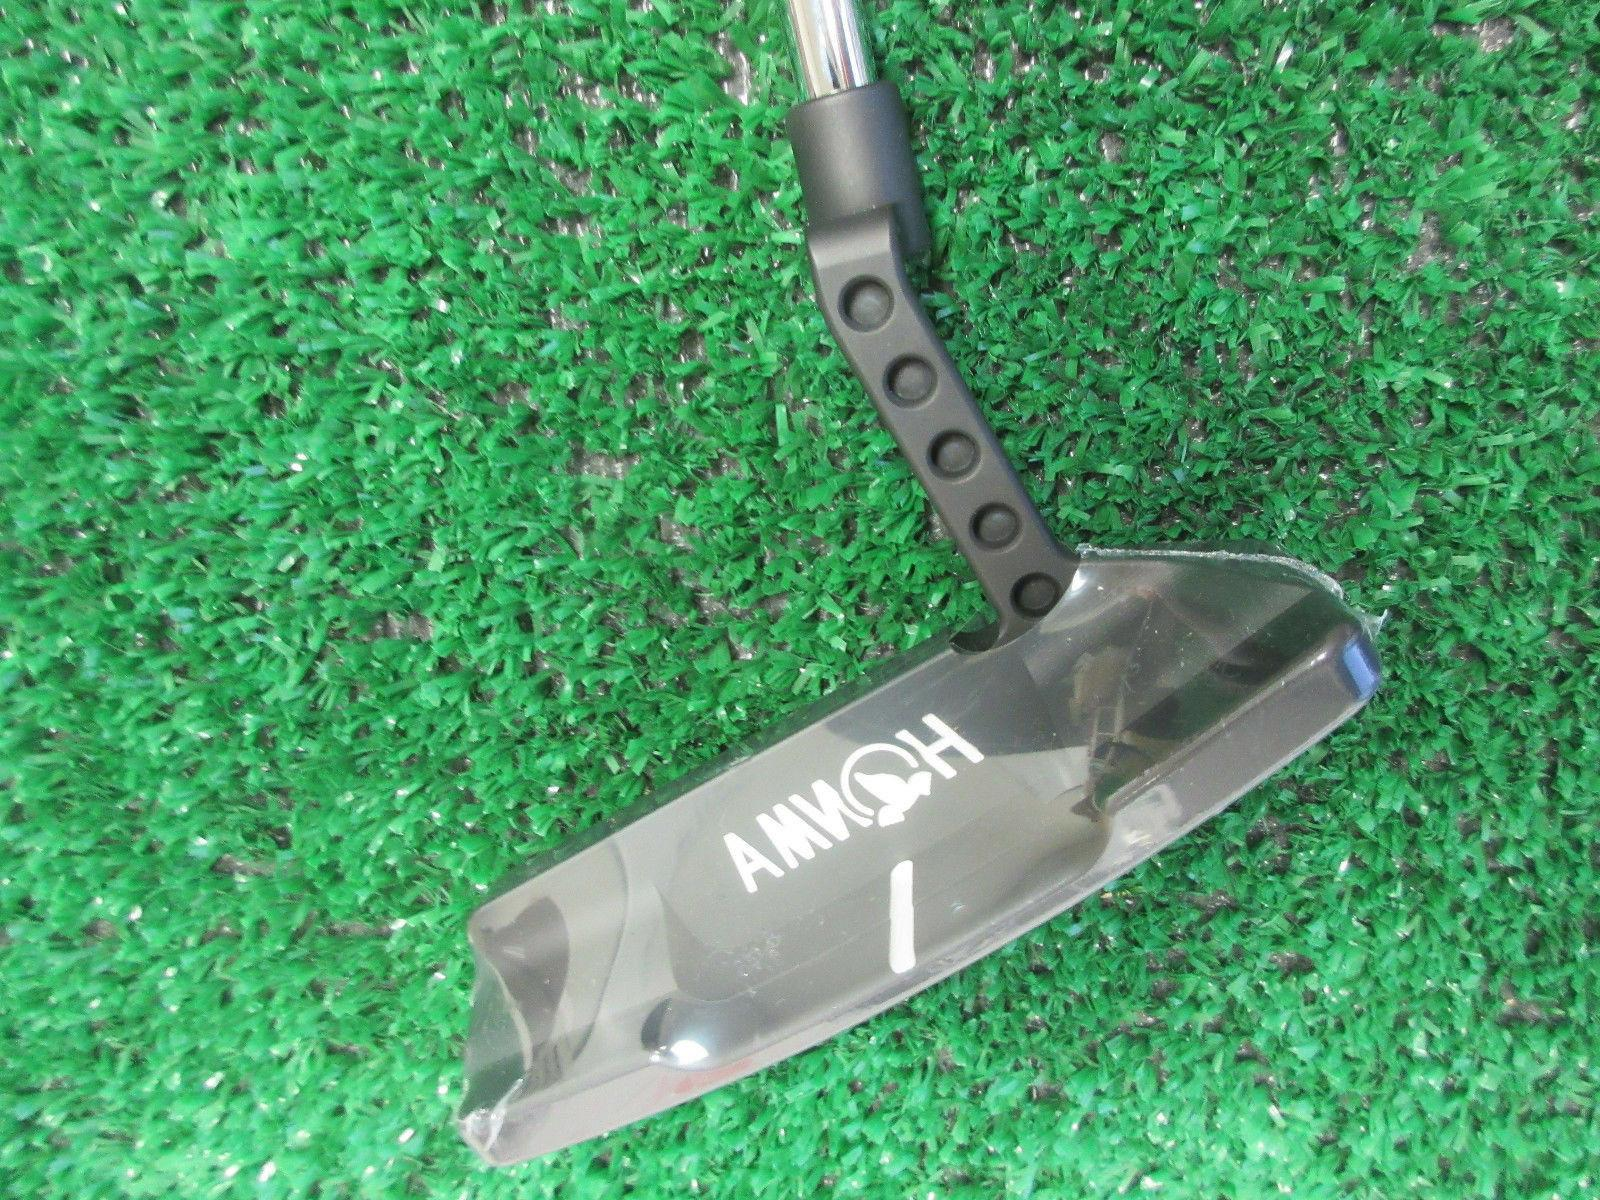 NEW!! TOUR WORLD PUTTER TW. 34 WITH COVER!